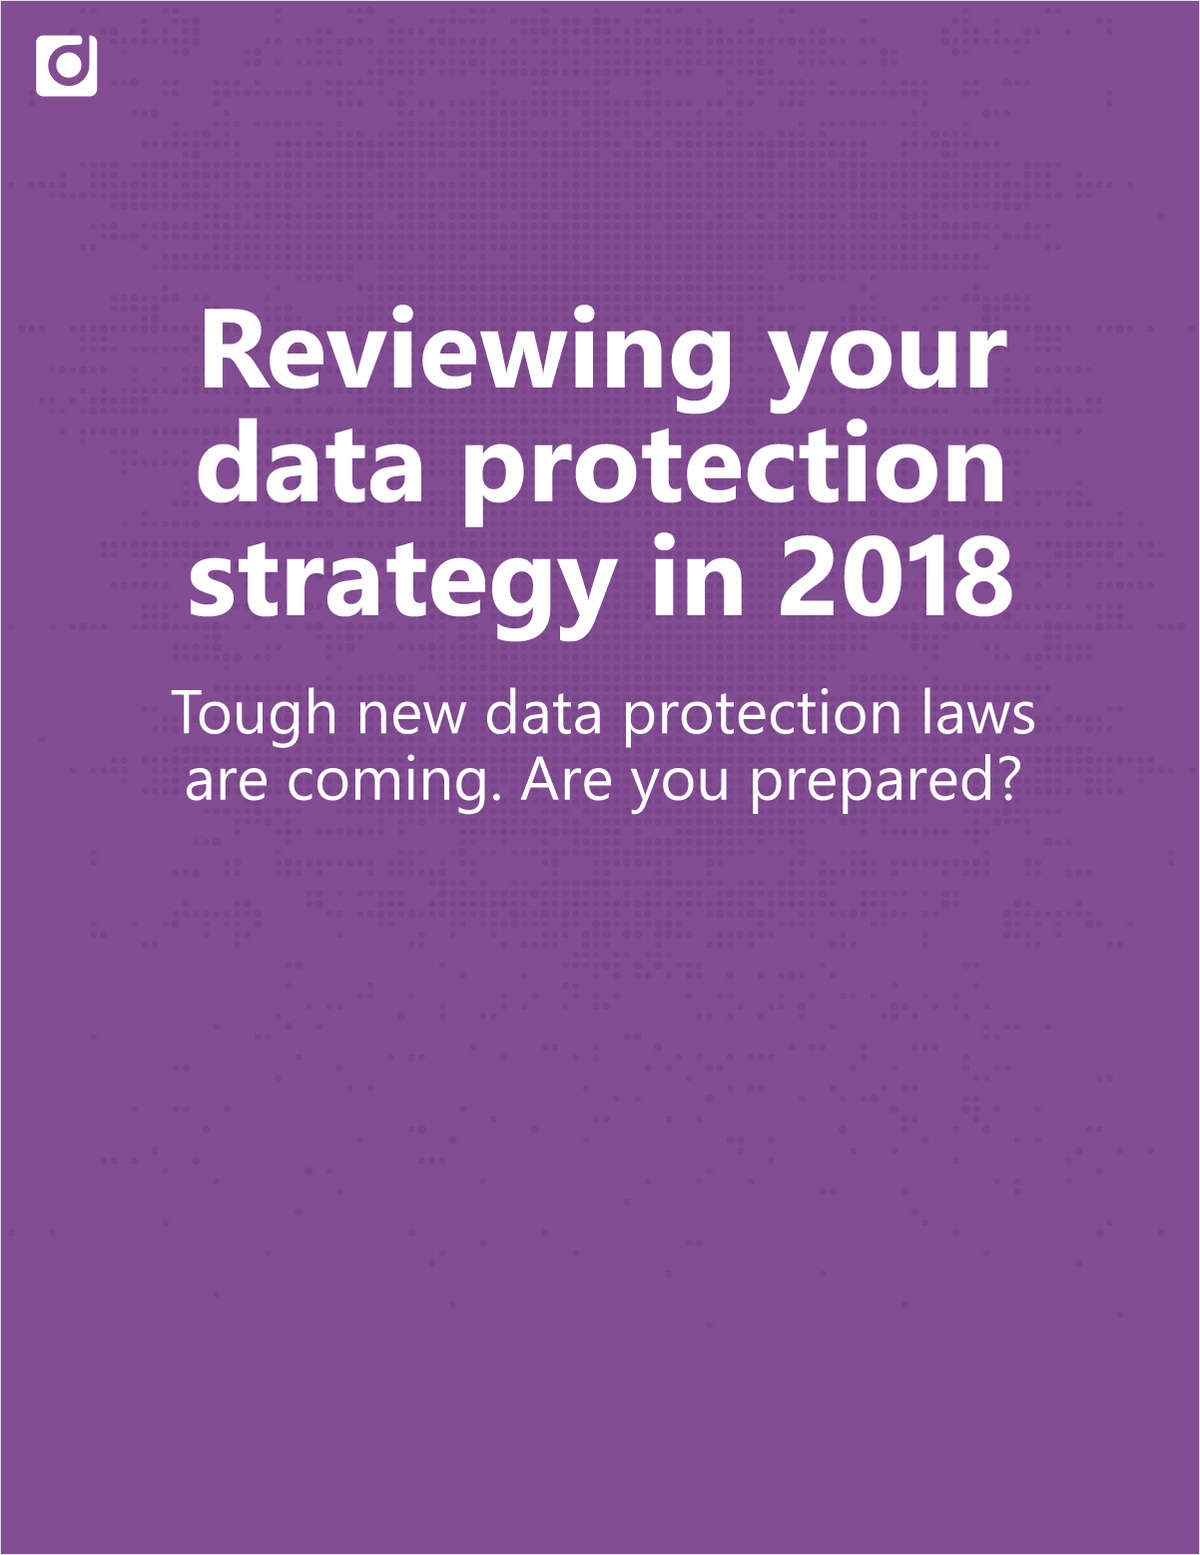 Reviewing Your Data Protection Strategy in 2018